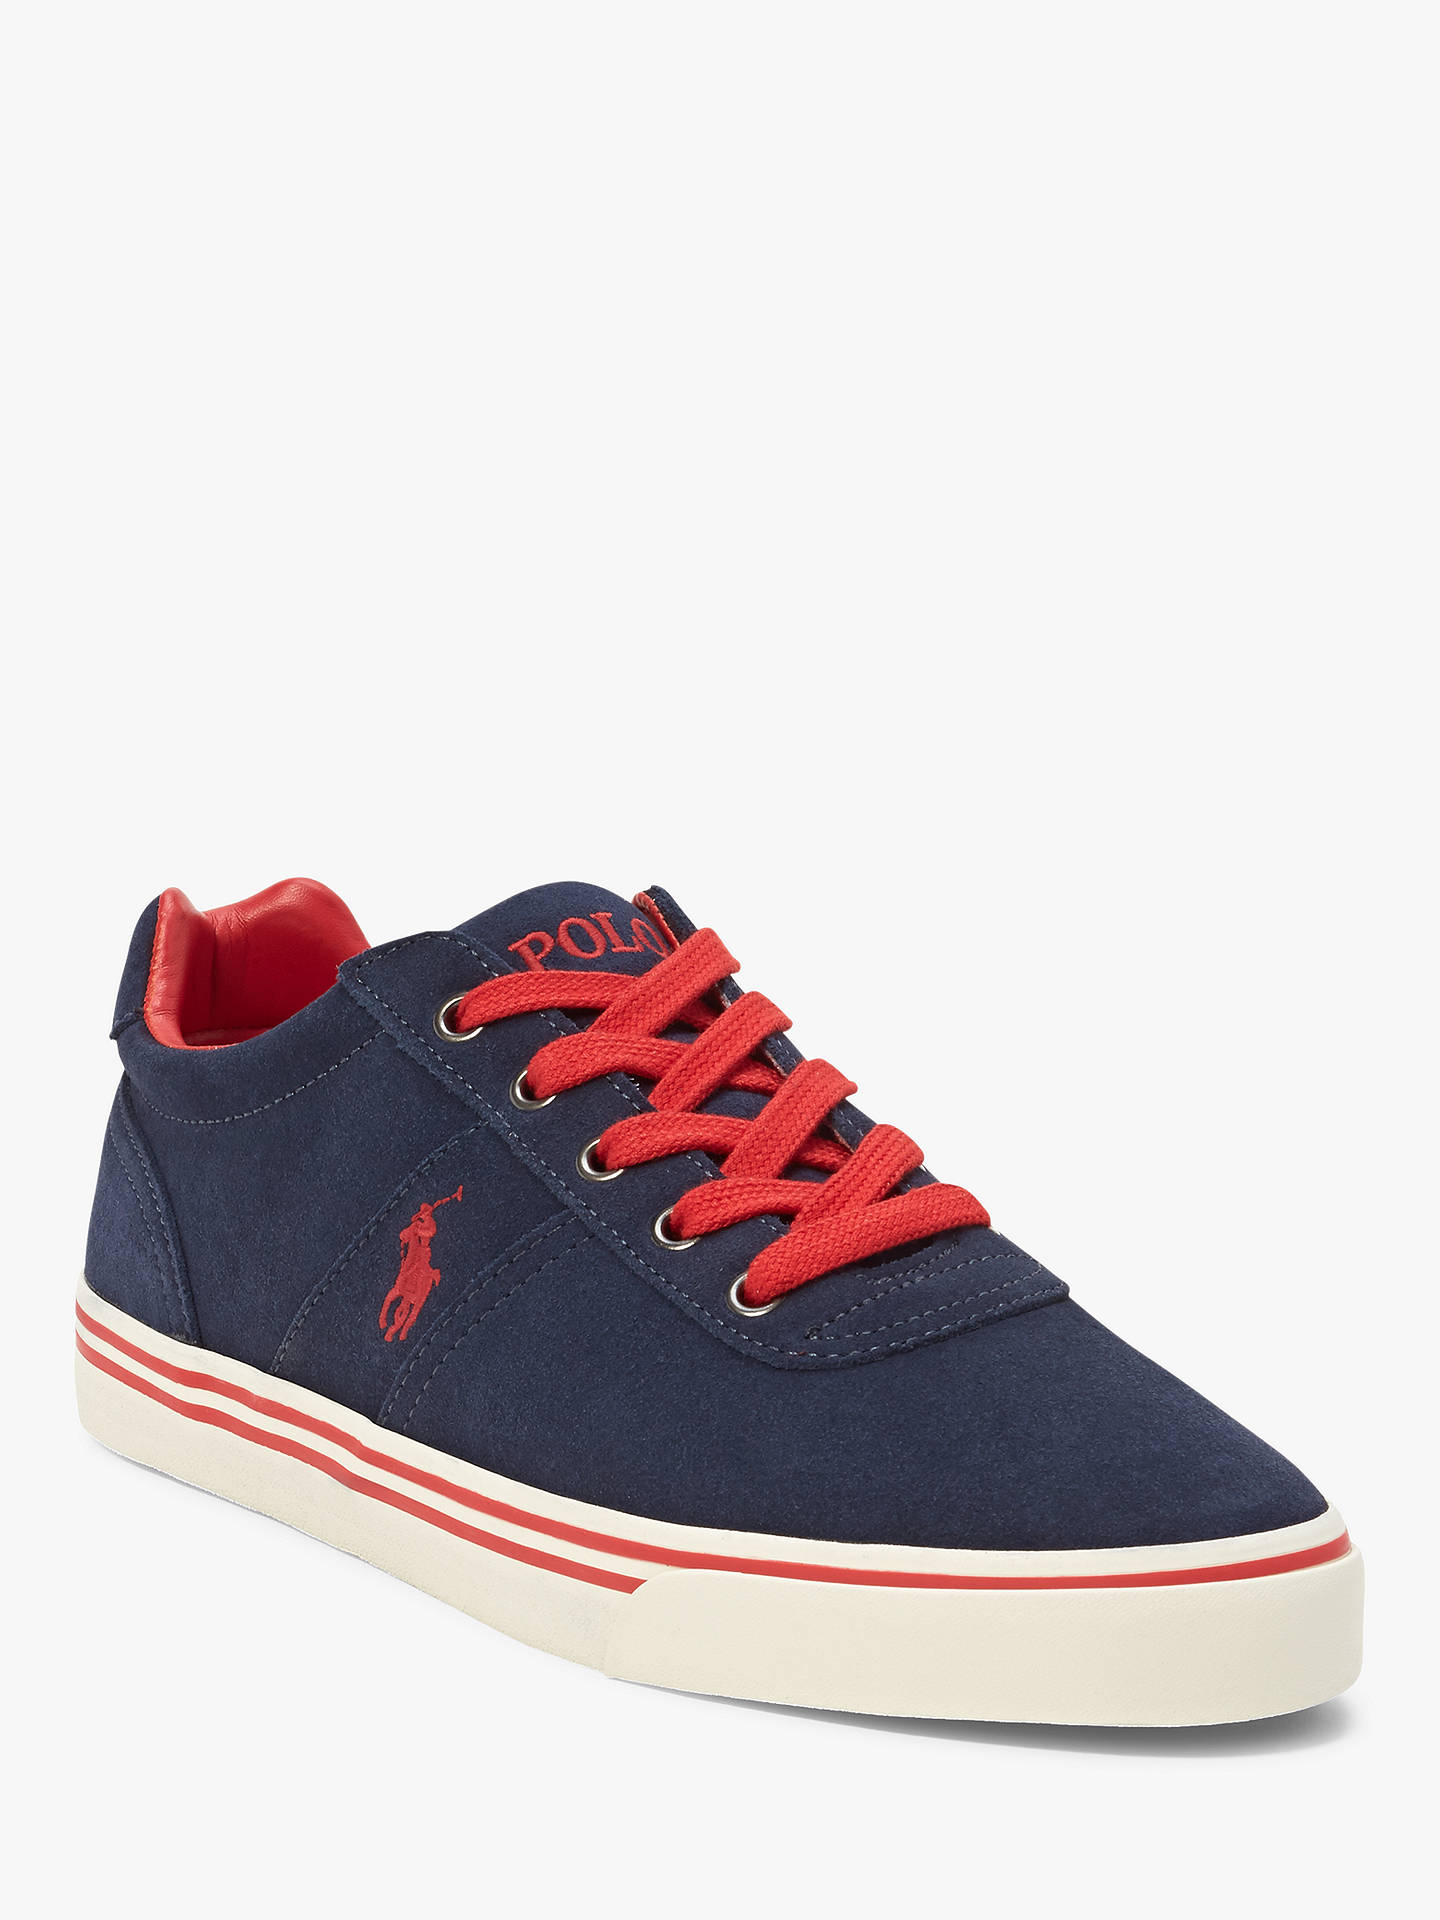 8bbe472156b Polo Ralph Lauren Hanford Suede Trainers at John Lewis   Partners